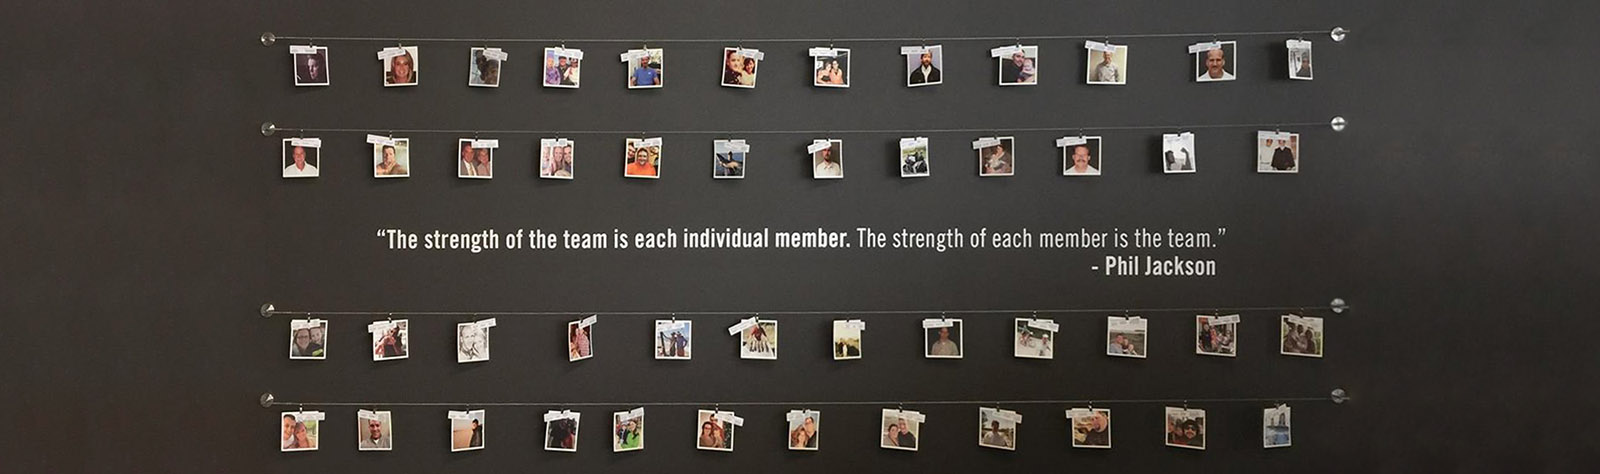 Staff Photos Wall - Phil Jackson Quote